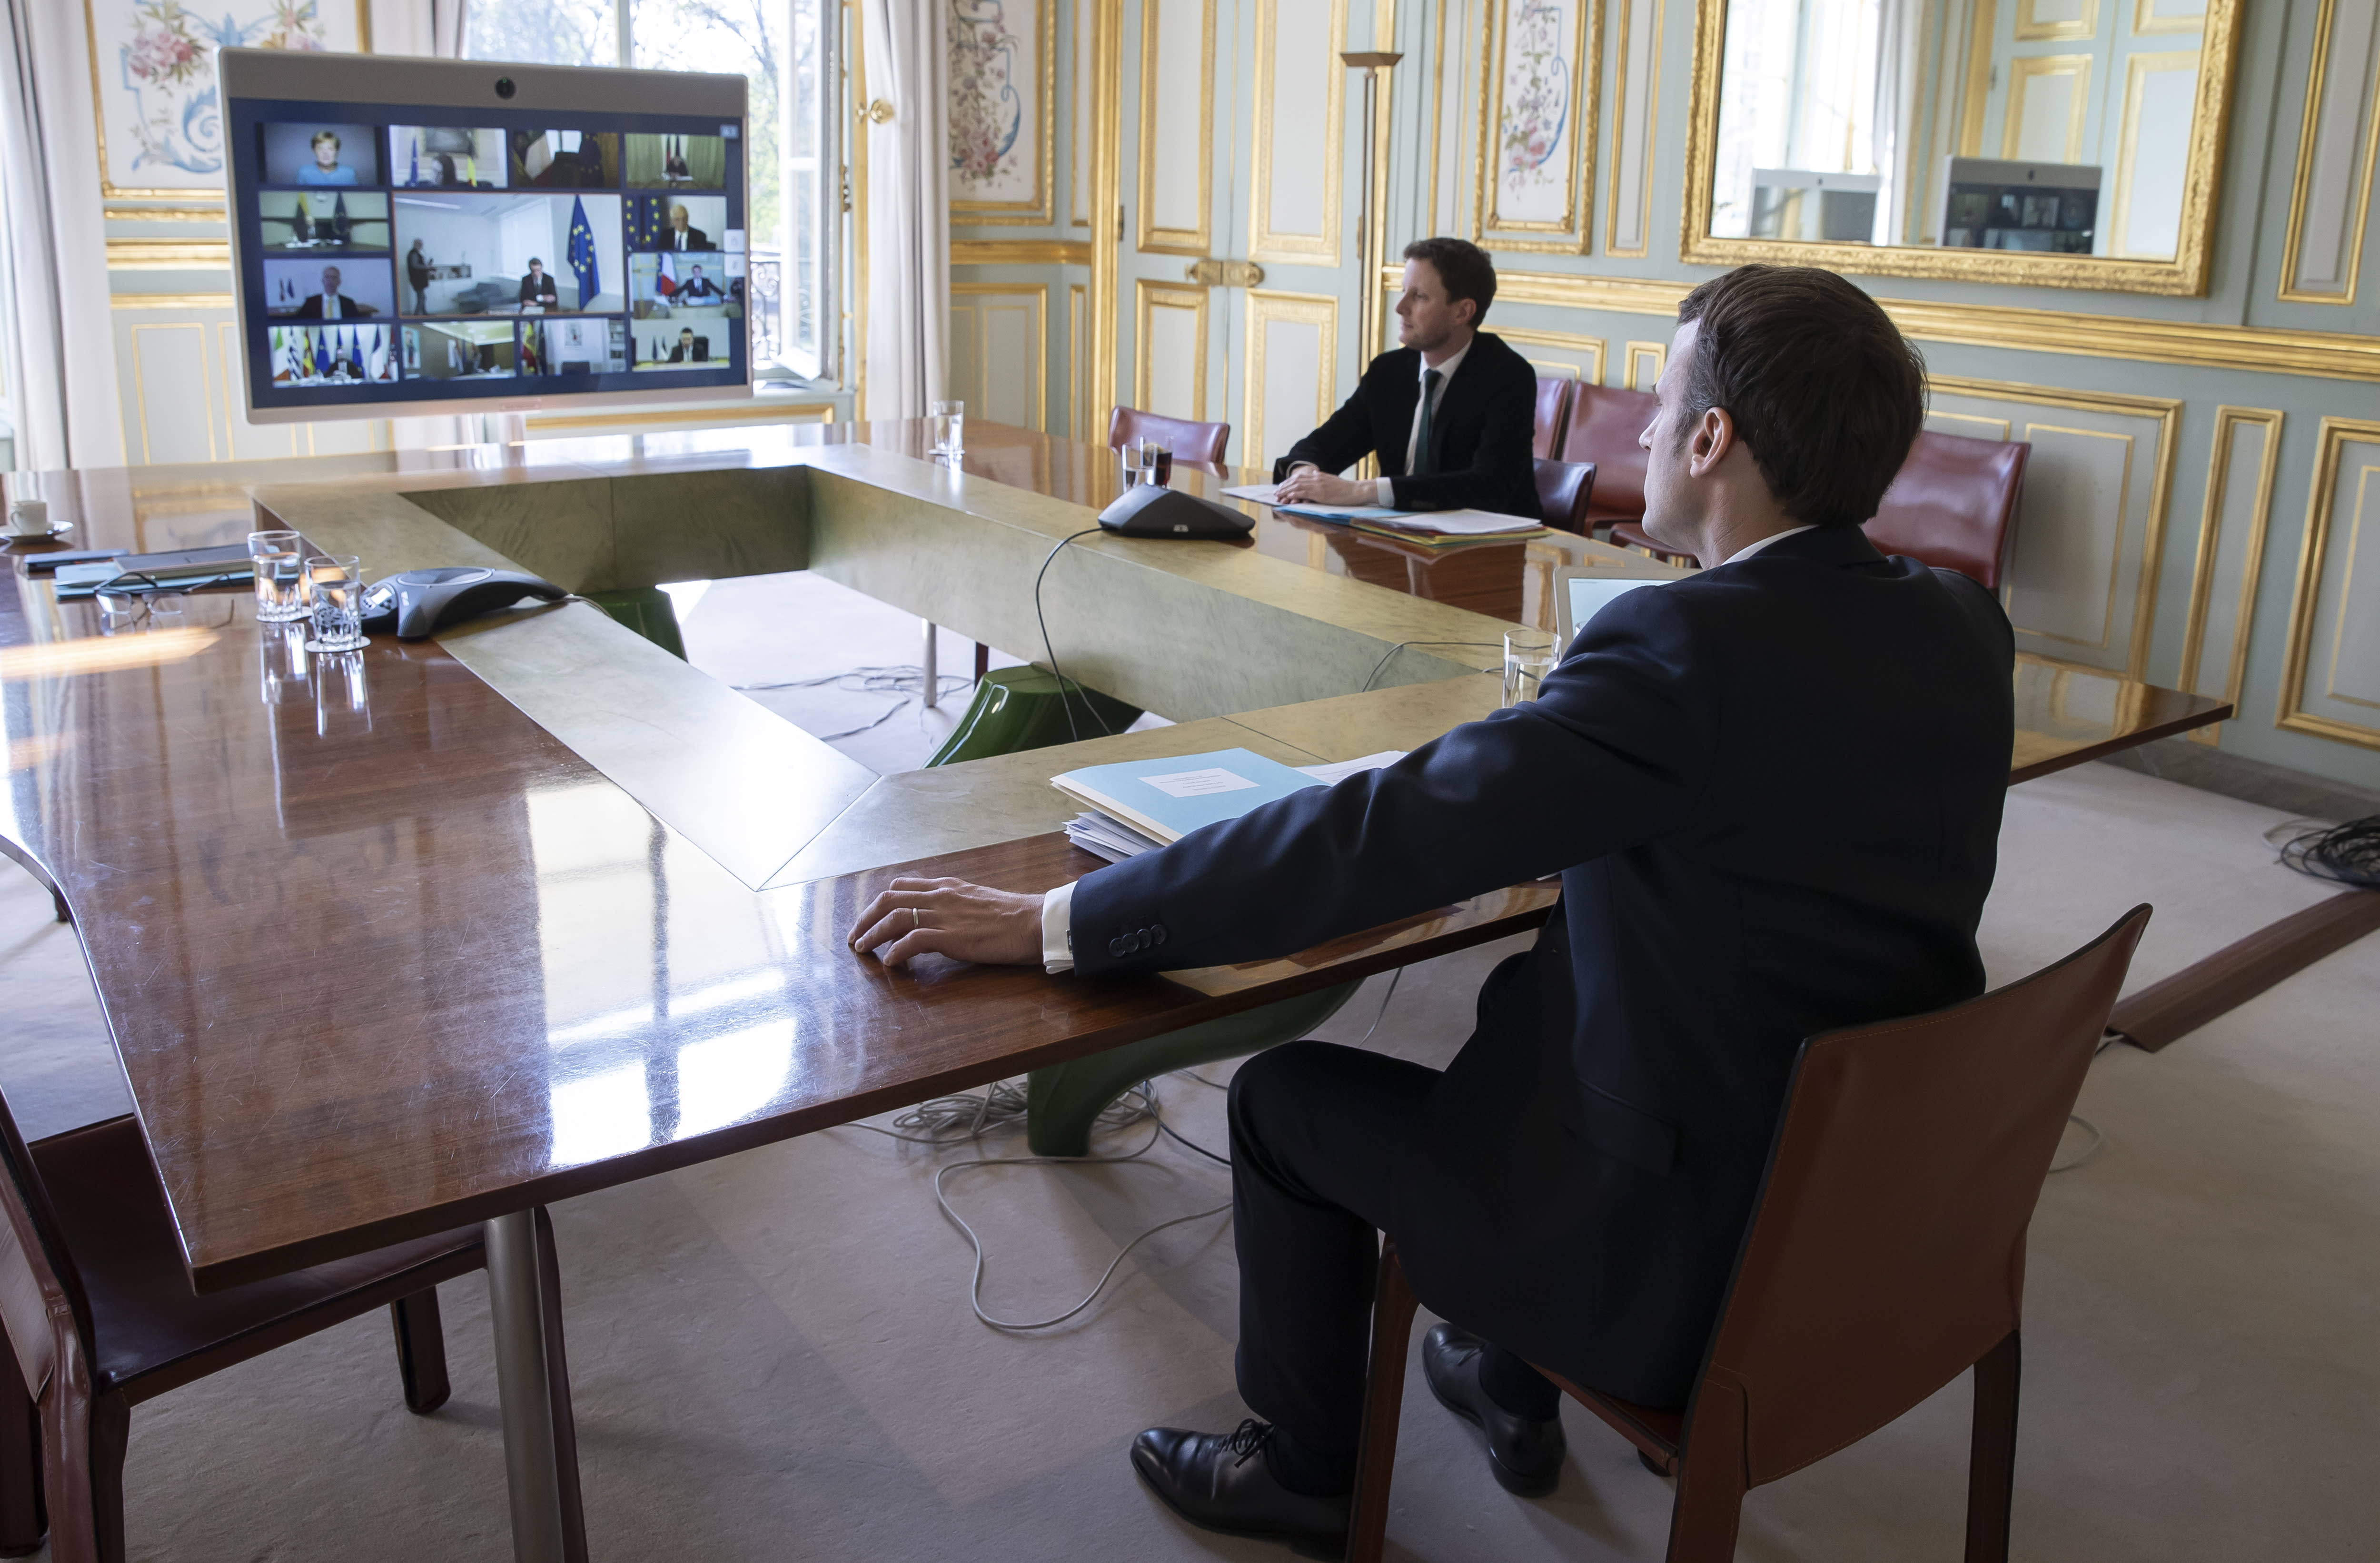 FILE - In this Thursday, March 26, 2020 file photo, French President Emmanuel Macron, right, attends a video conference call with members of the European Council at the Elysee Palace in Paris. European Union leaders are preparing for a new virtual summit, which will take place Thursday, April 23, 2020, to take stock of the damage the coronavirus has inflicted on the lives and livelihoods of the bloc's citizens and to thrash out a more robust plan to revive their ravaged economies. (Ian Langsdon, Pool via AP, File)